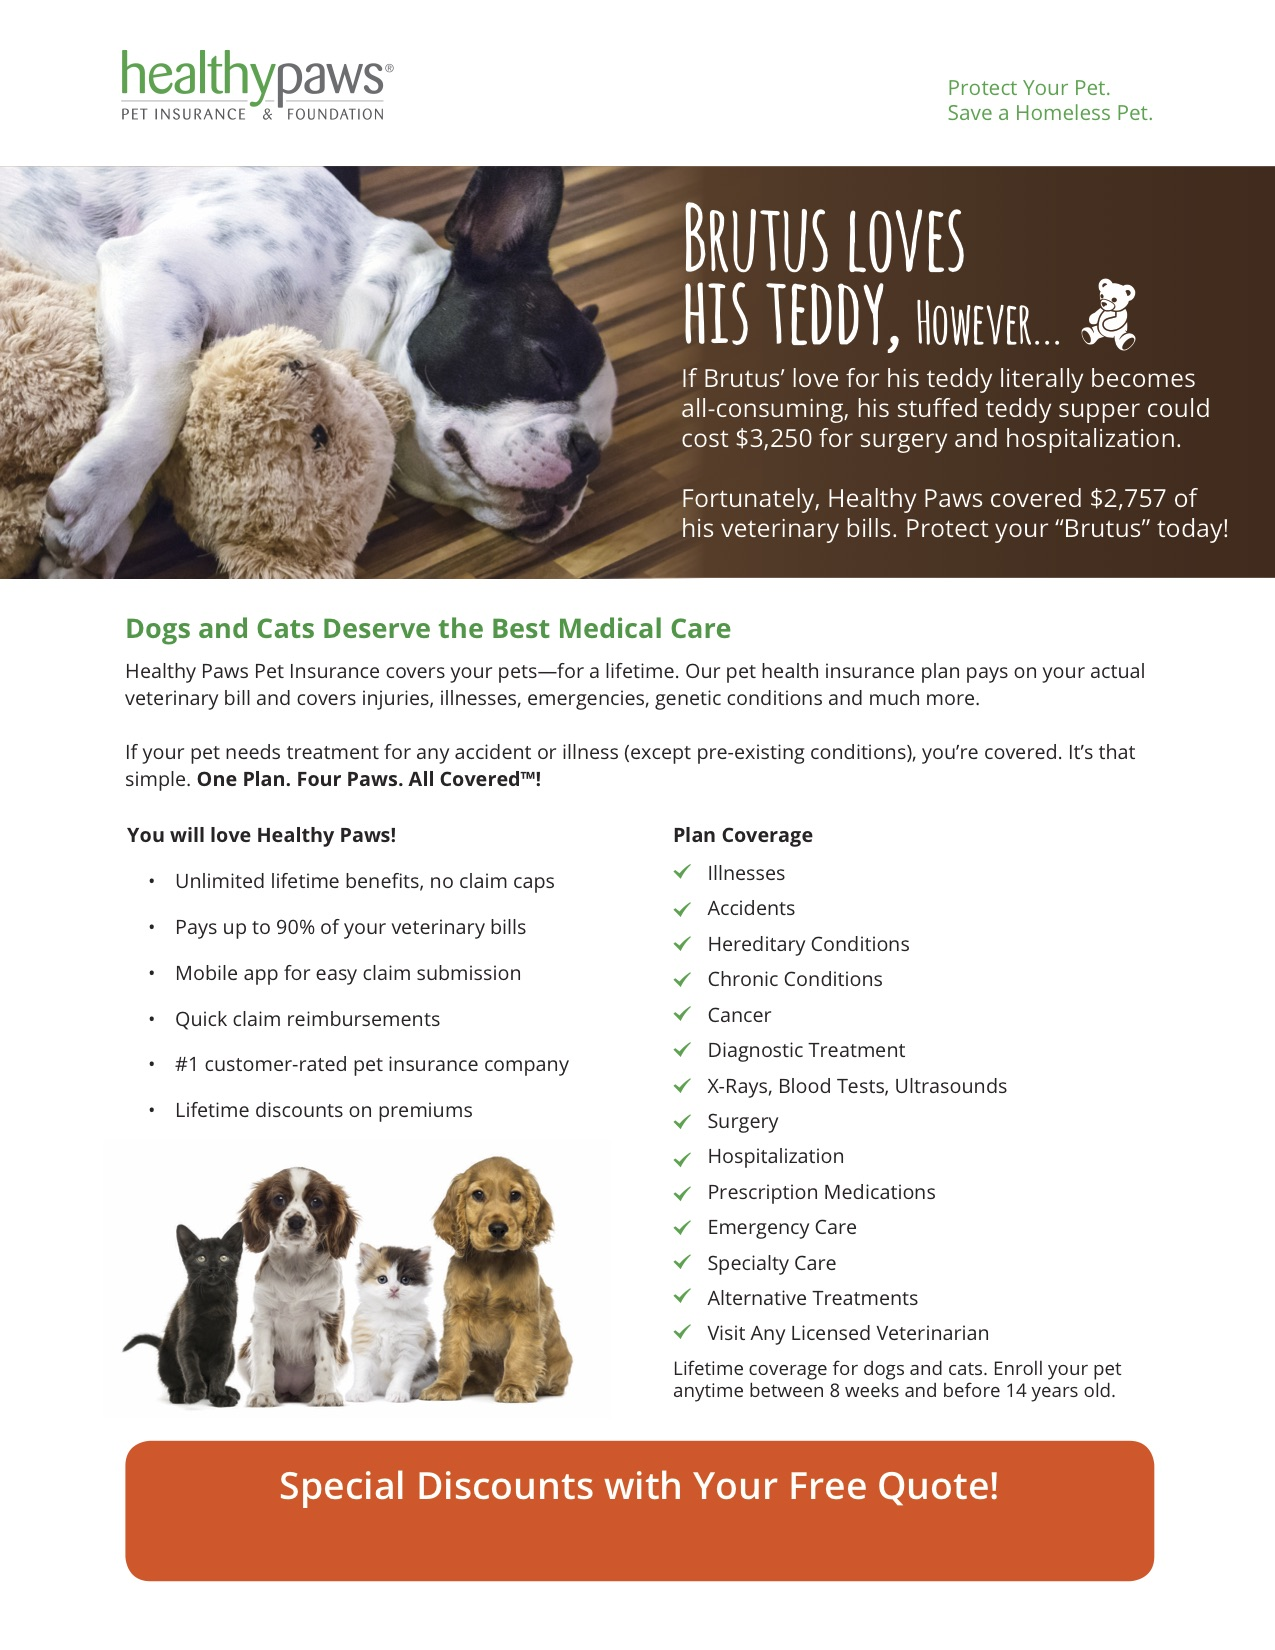 Click to get your free Healthy Paws Pet Insurance quote